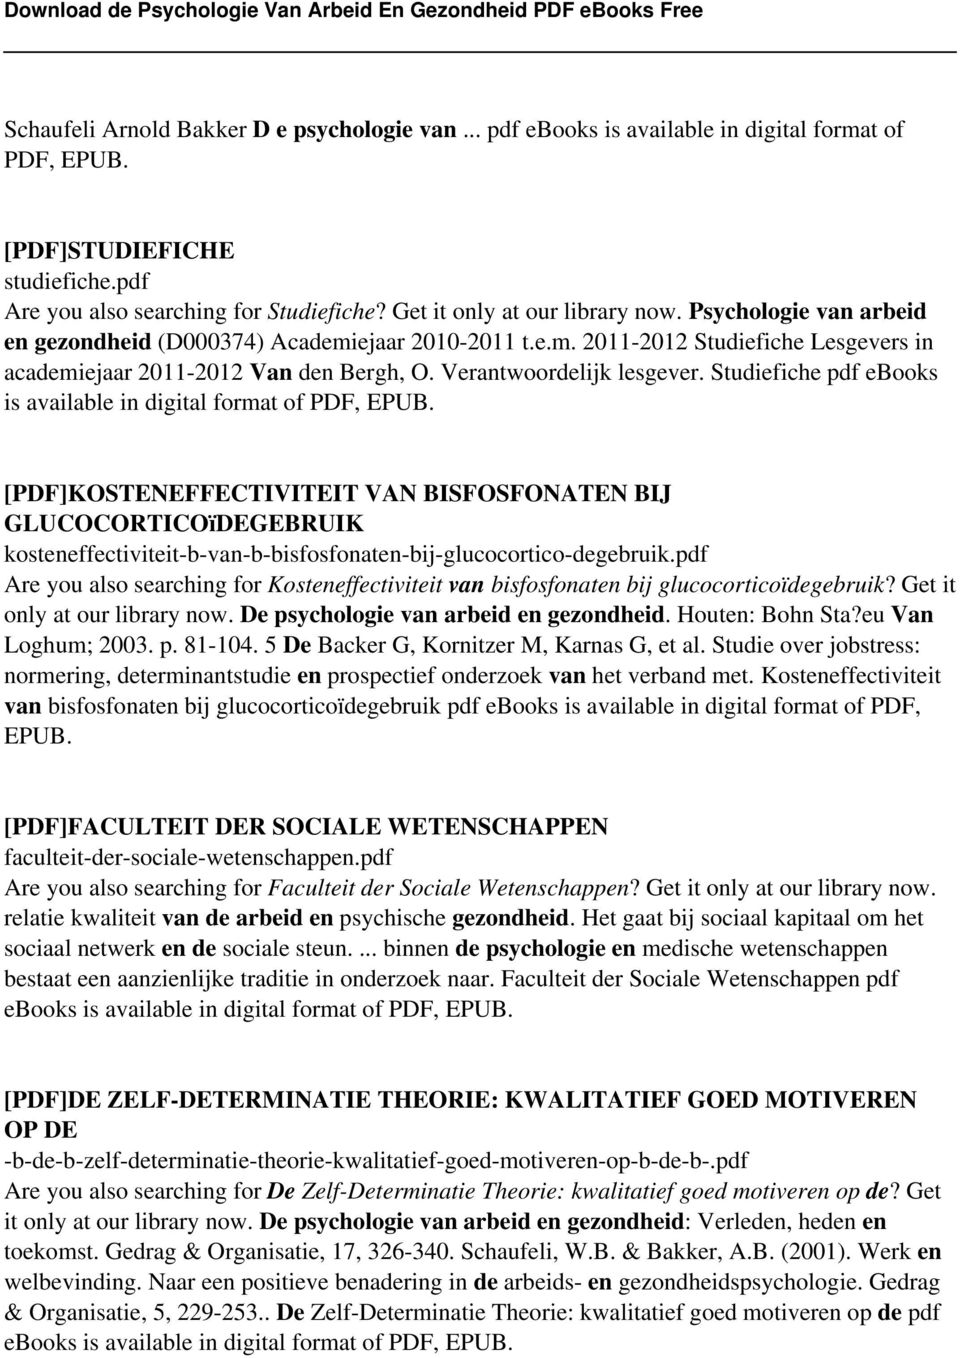 Verantwoordelijk lesgever. Studiefiche pdf ebooks is available in digital format of PDF, EPUB.